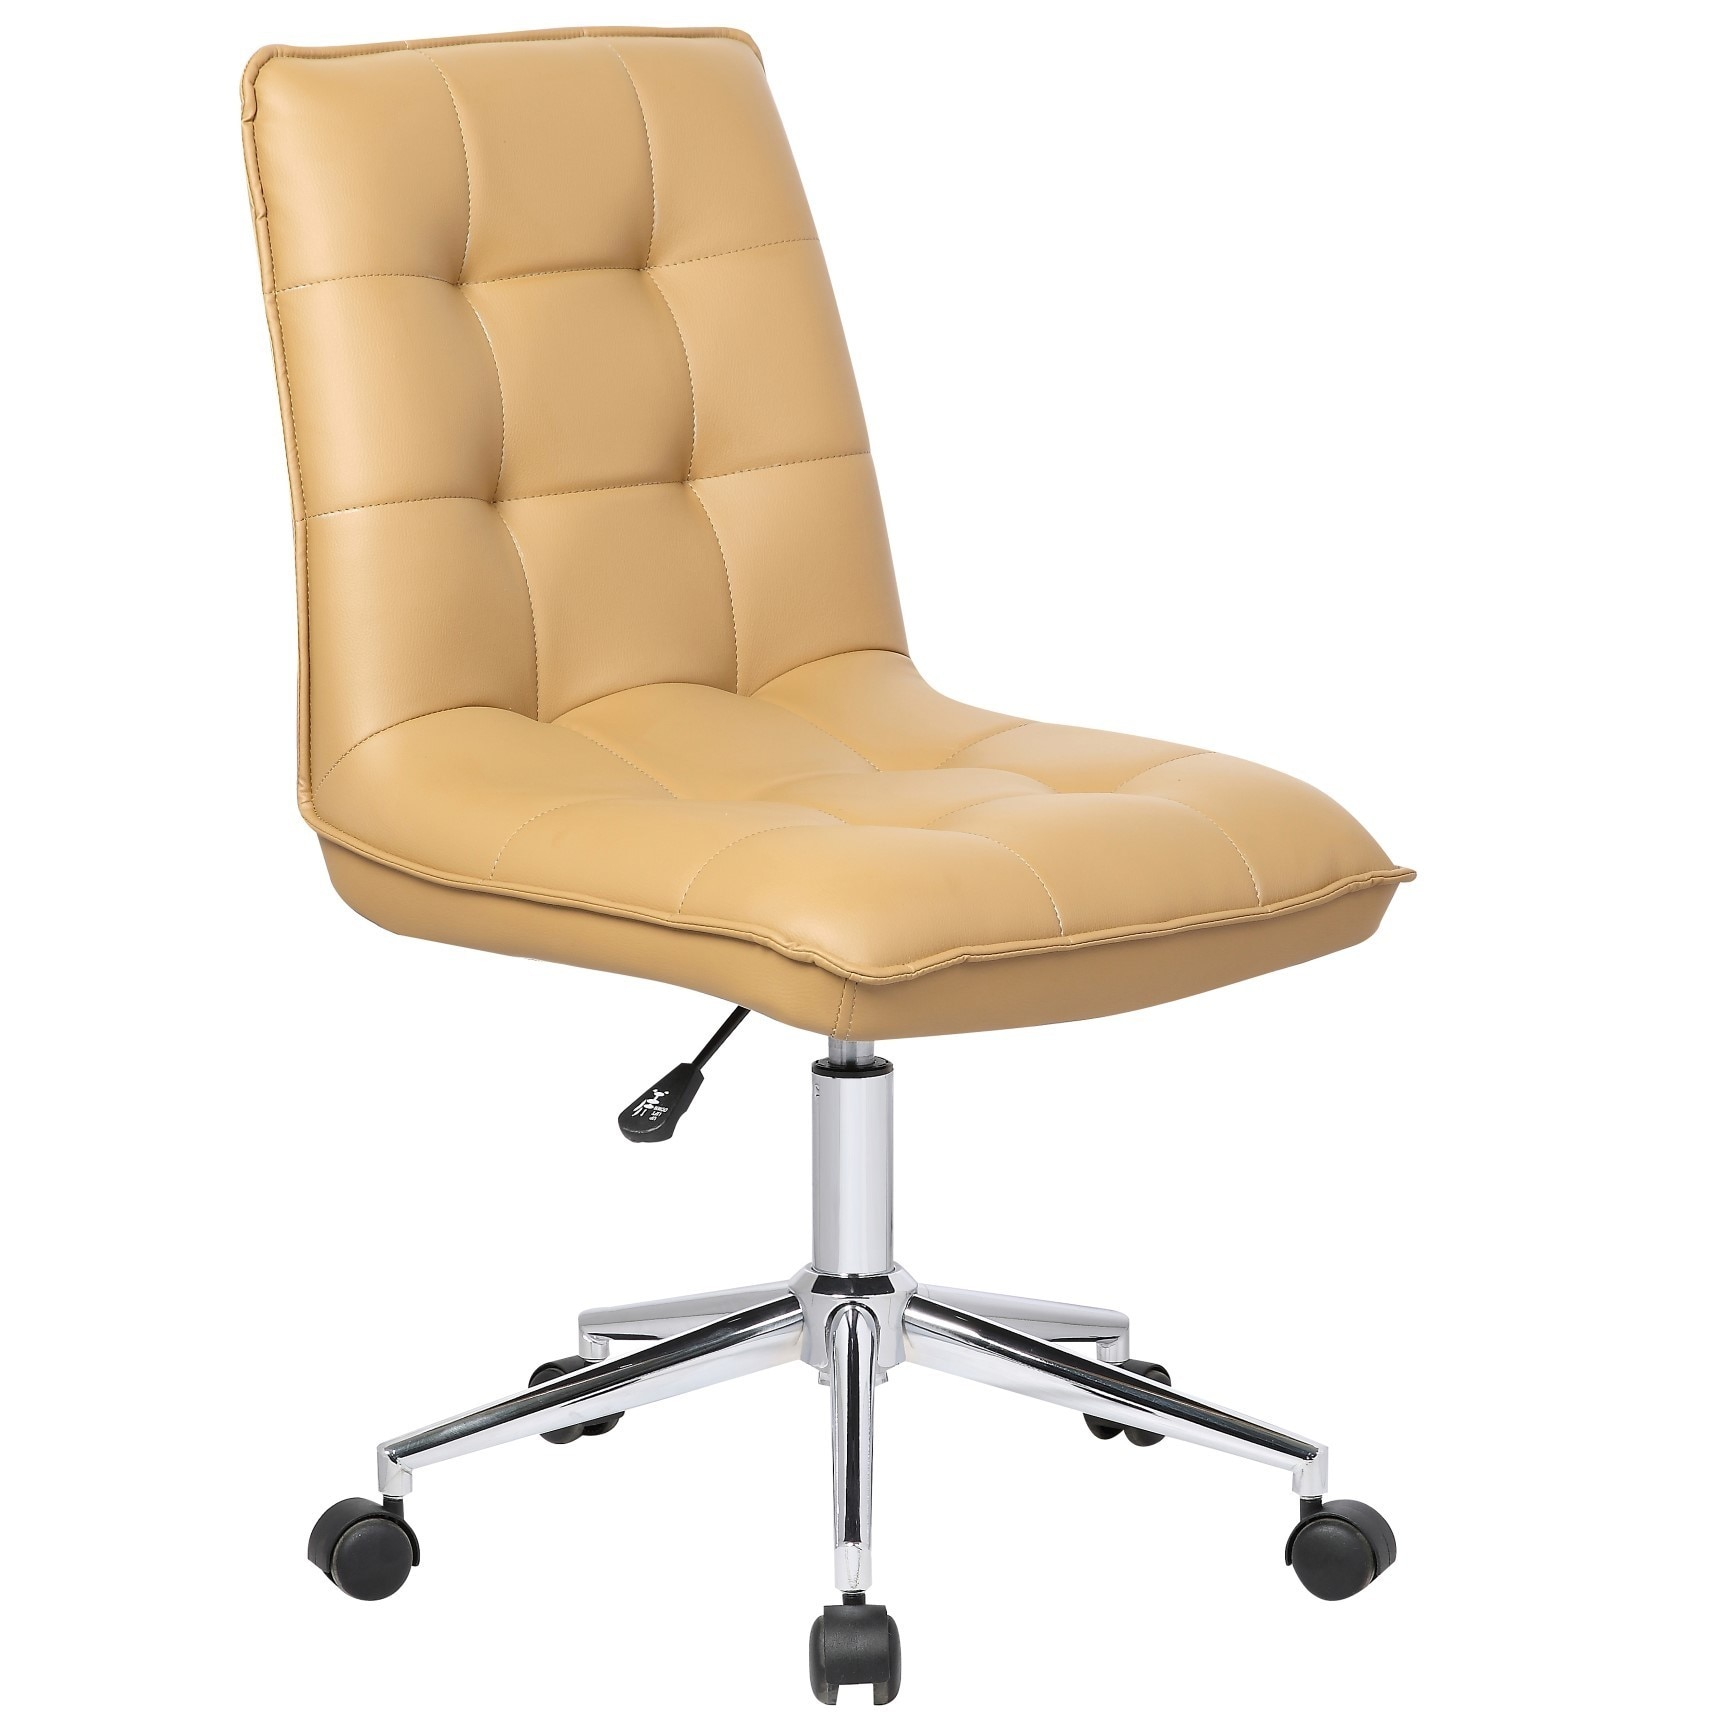 Porthos Home Leona Adjustable fice Chair Free Shipping Today